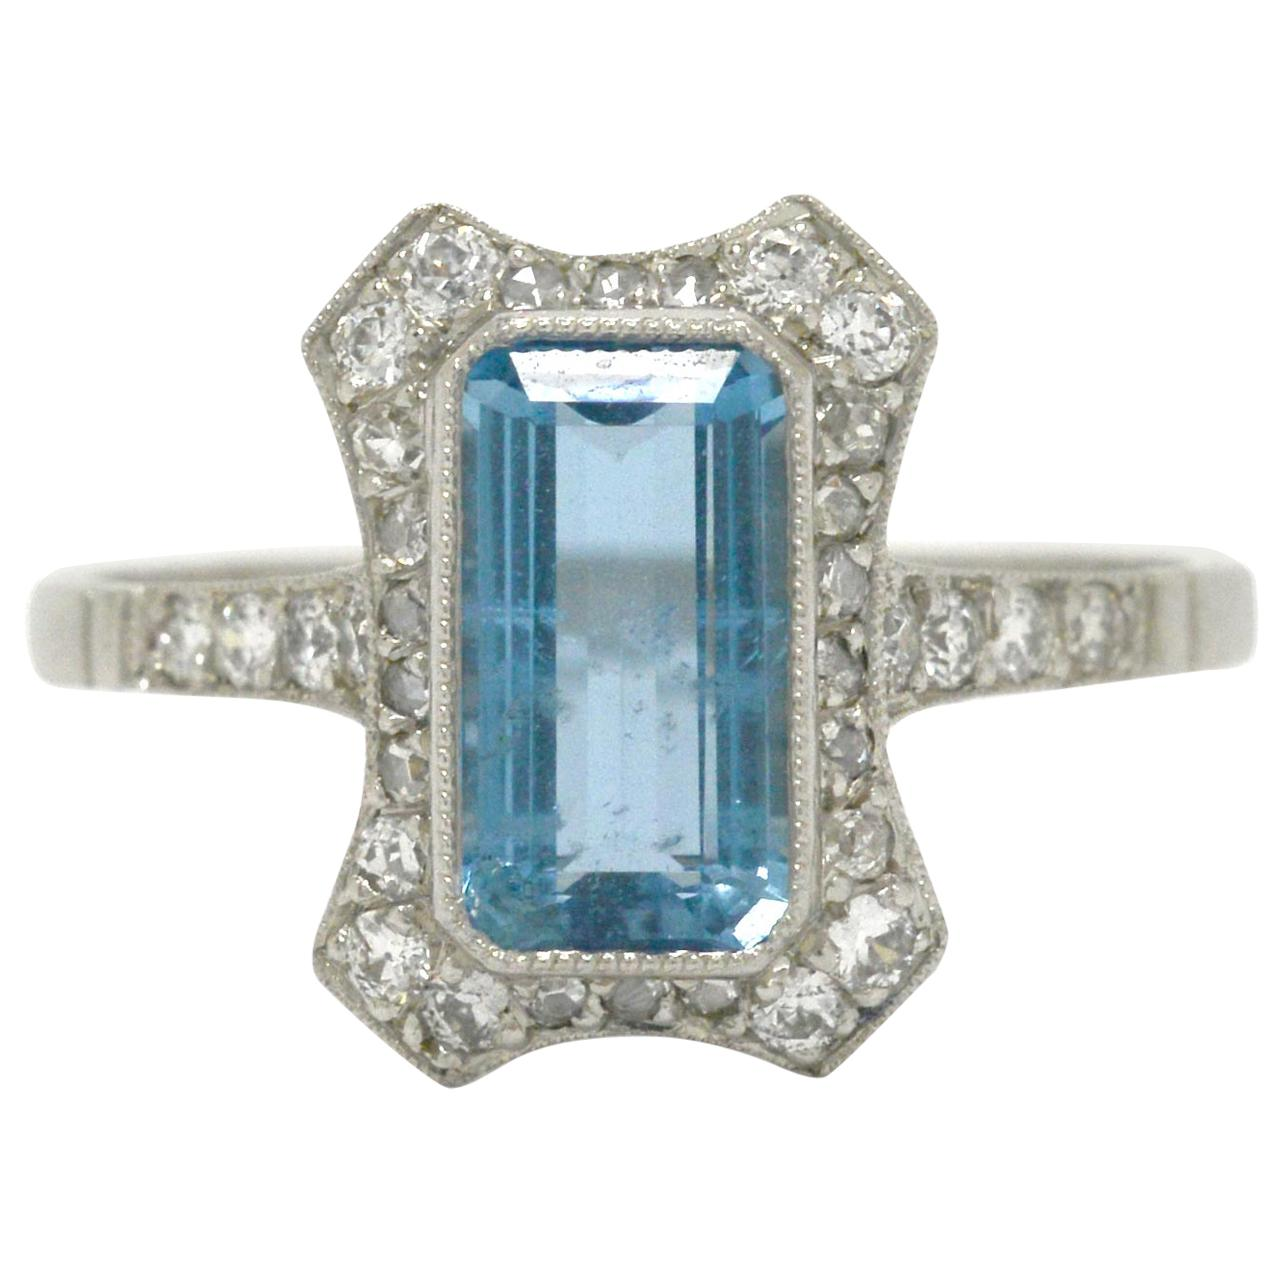 be8a92a091401 Antique Aquamarine Engagement Rings - 143 For Sale at 1stdibs